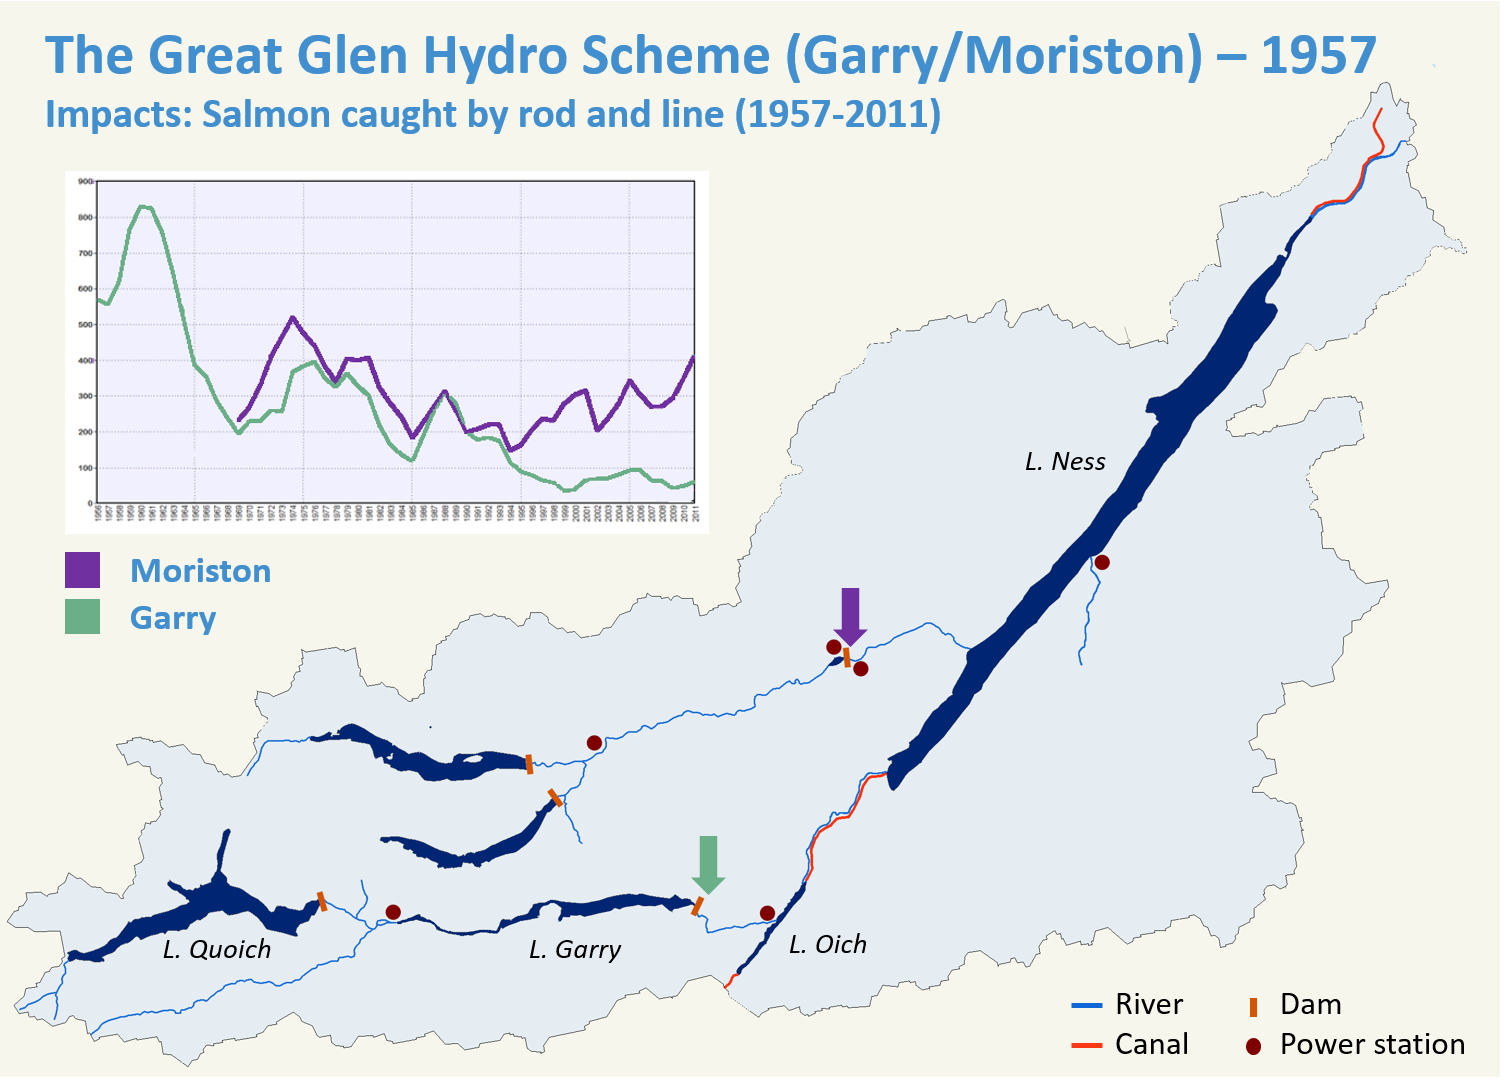 Great_Glen_hydroScheme_impacts